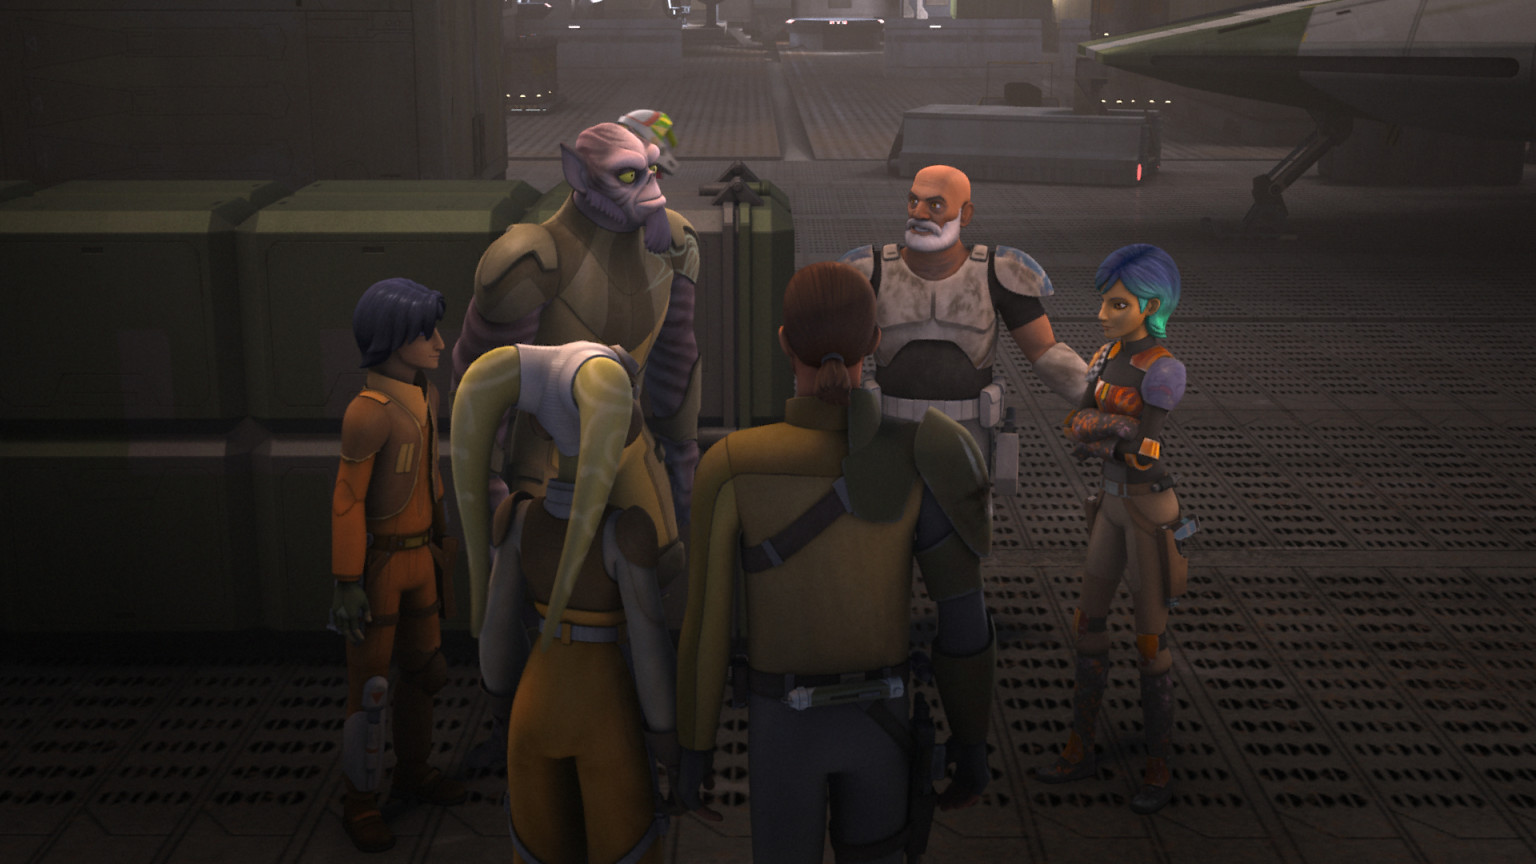 Star Wars Rebels - The Ghost crew and Rex